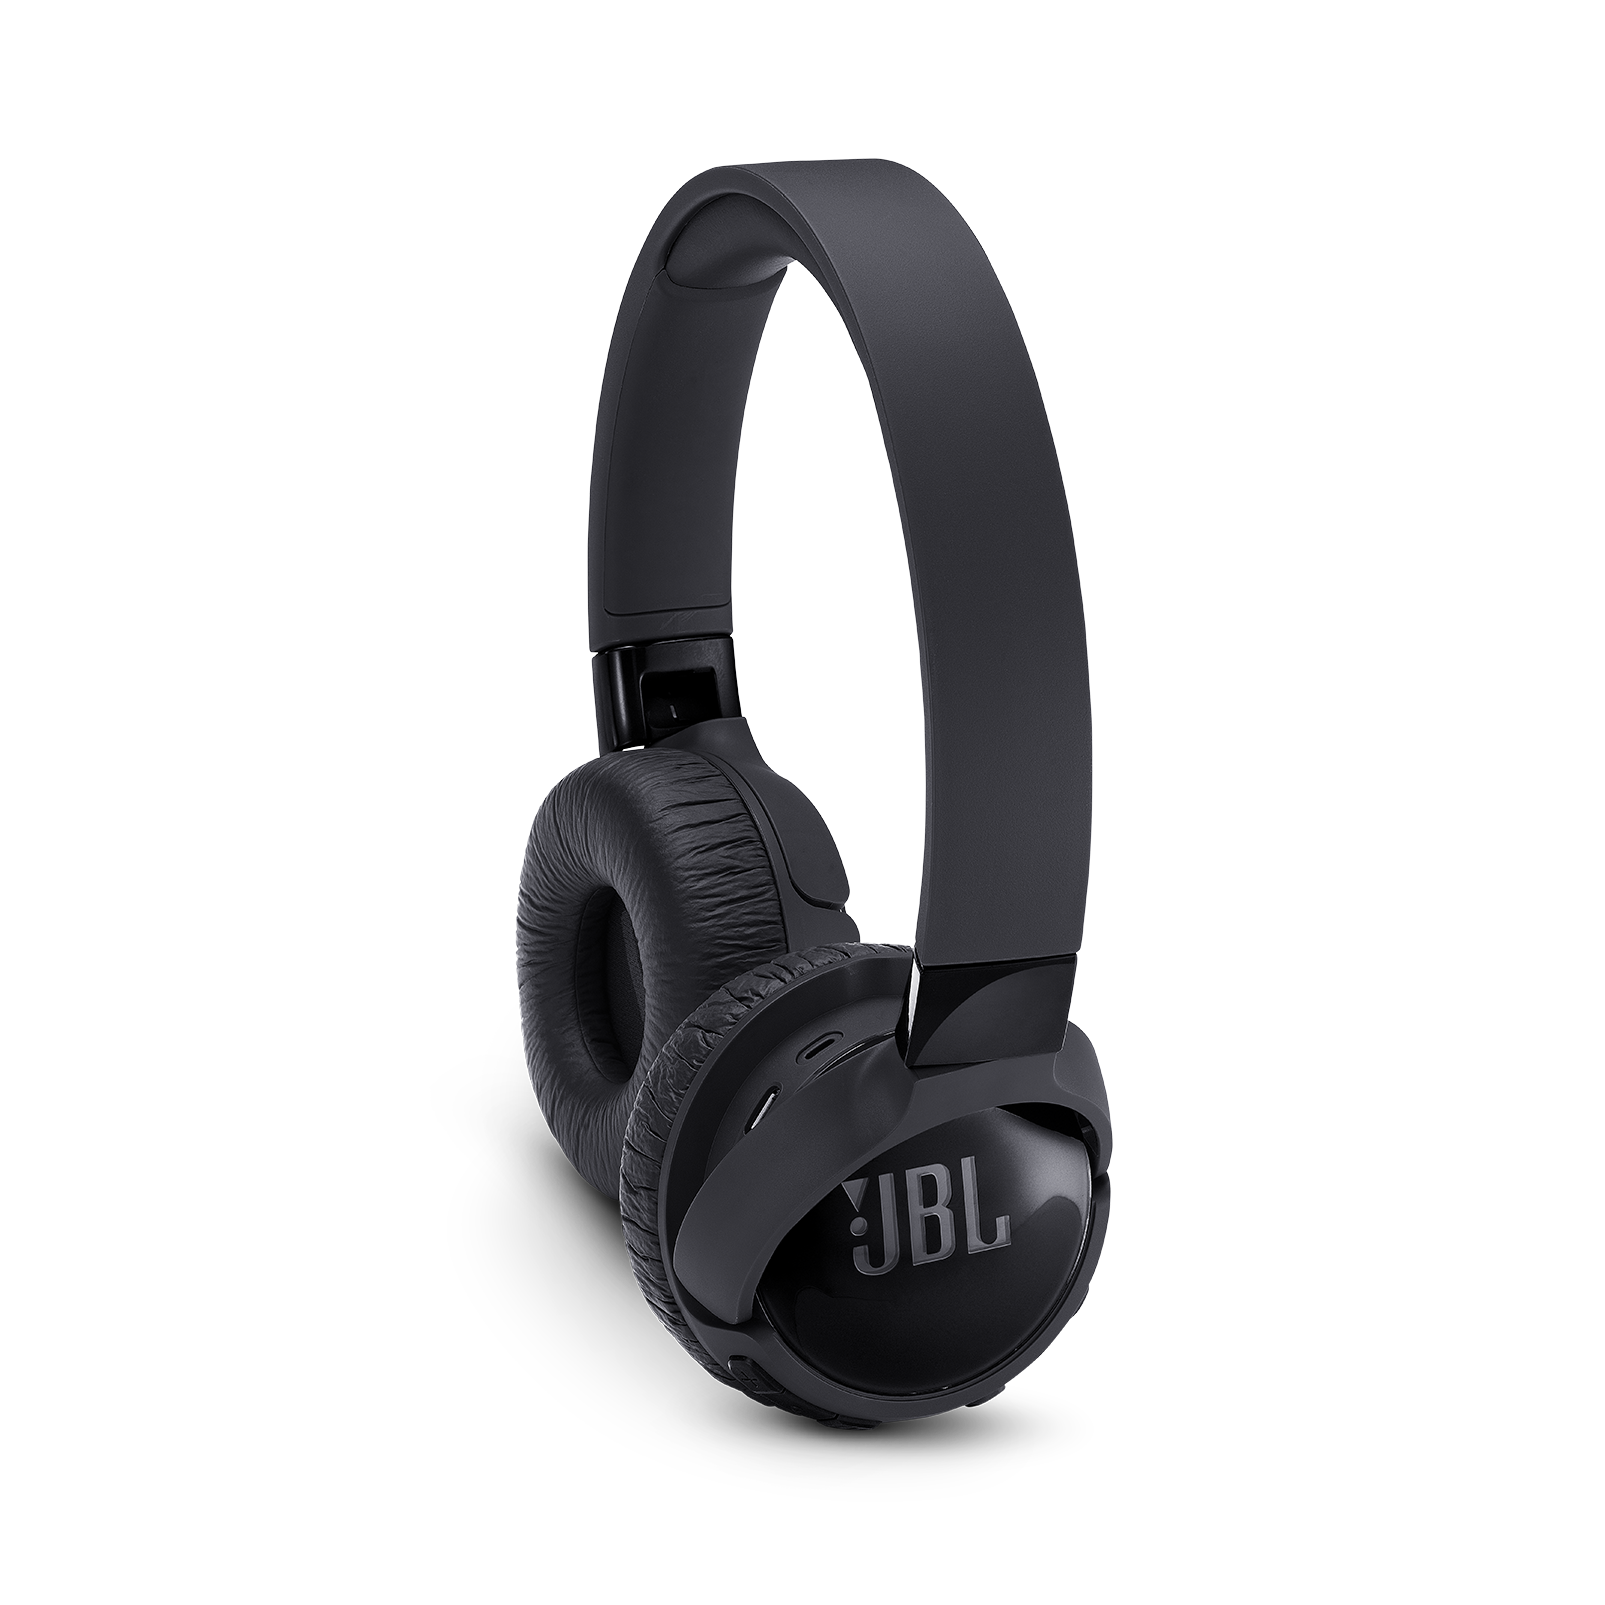 JBL TUNE 600BTNC - Black - Wireless, on-ear, active noise-cancelling headphones. - Detailshot 1